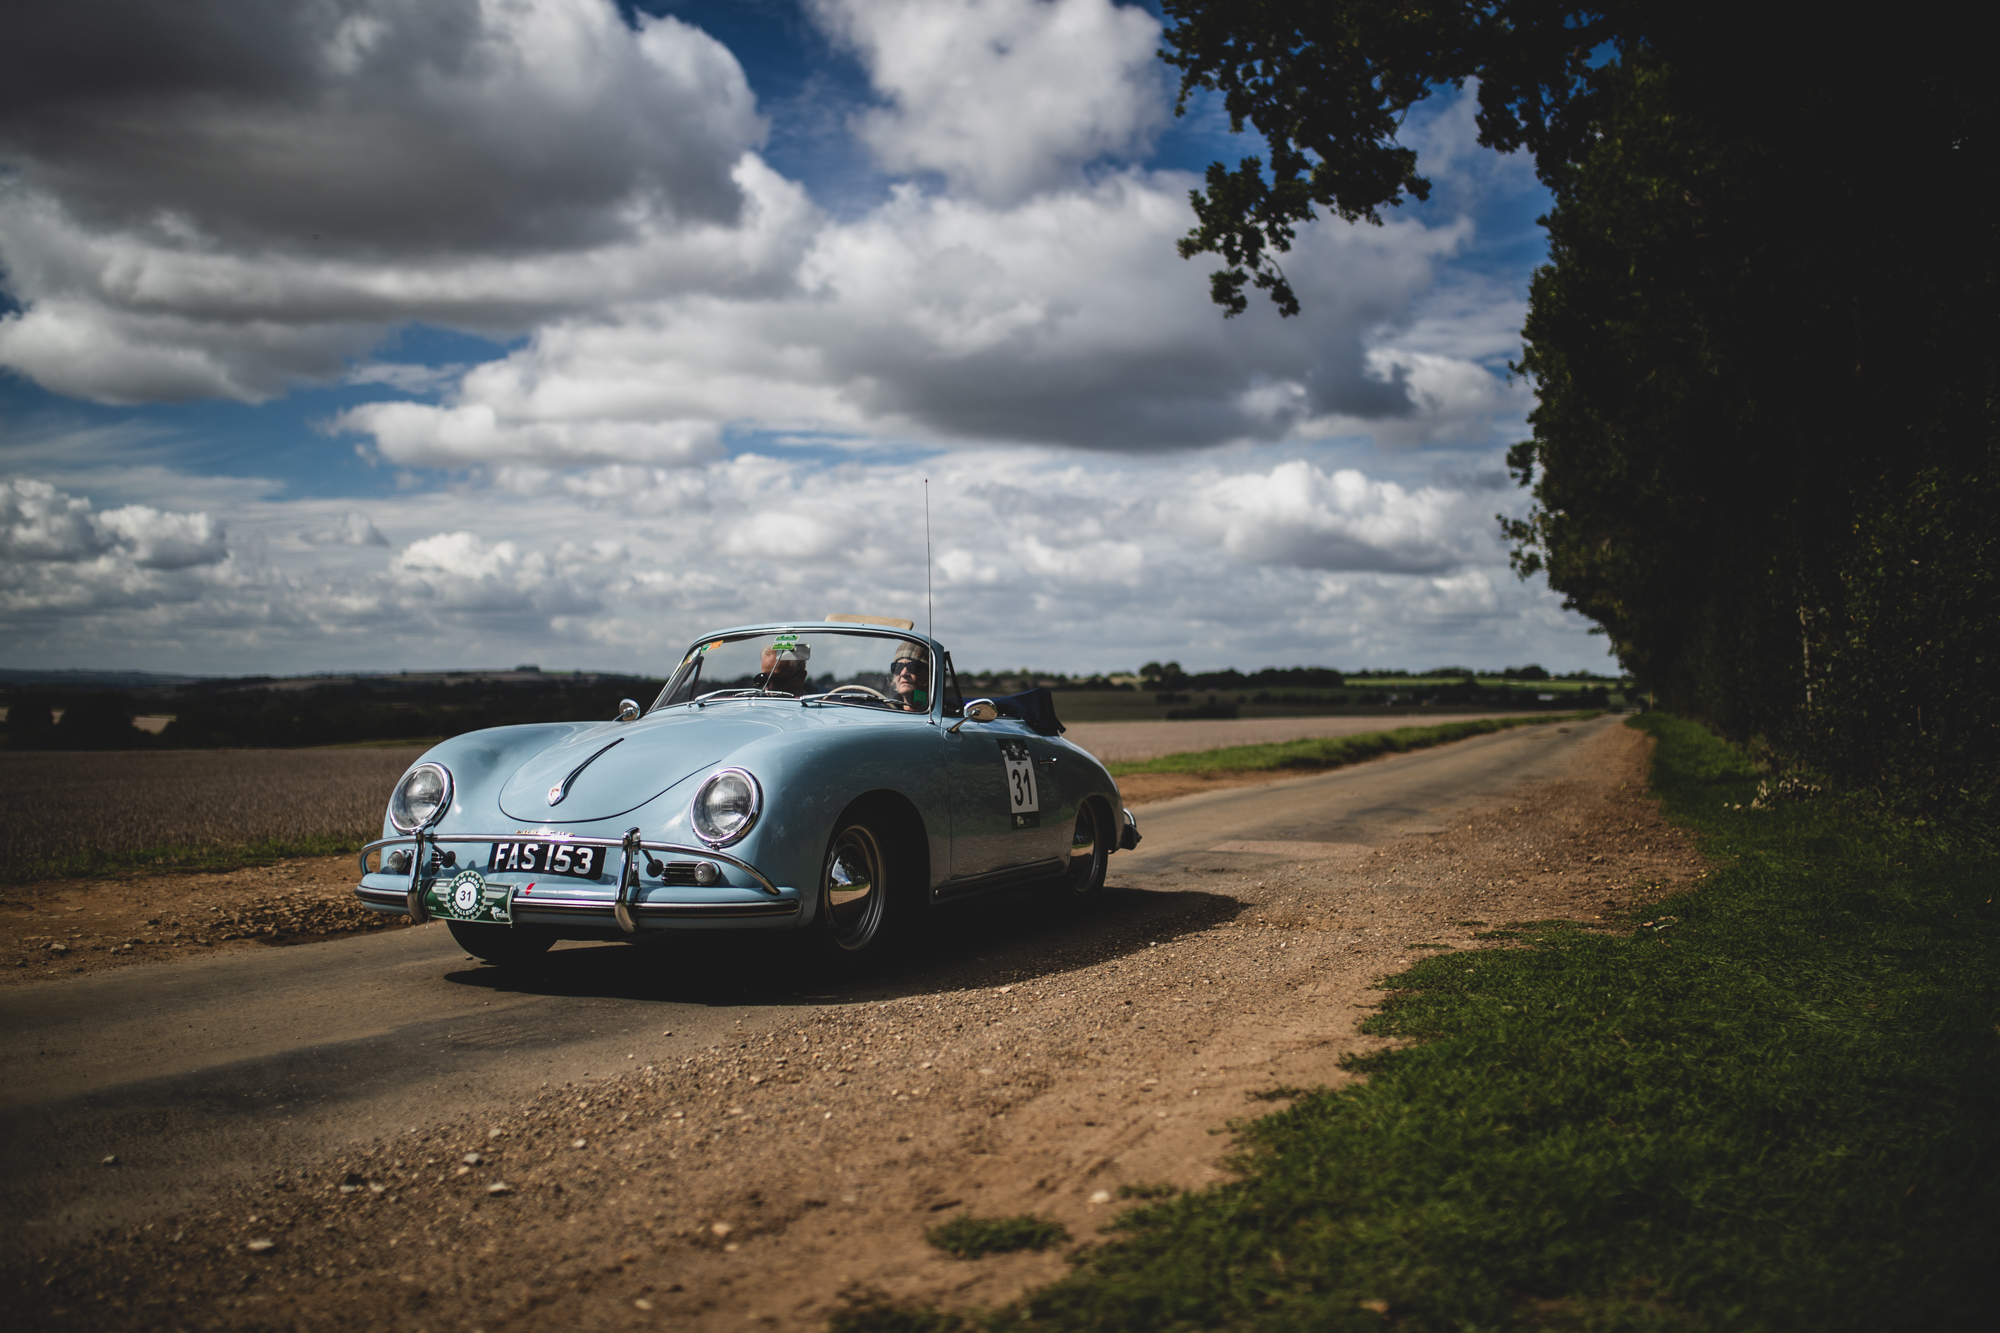 Porsche 356 roadster on rally